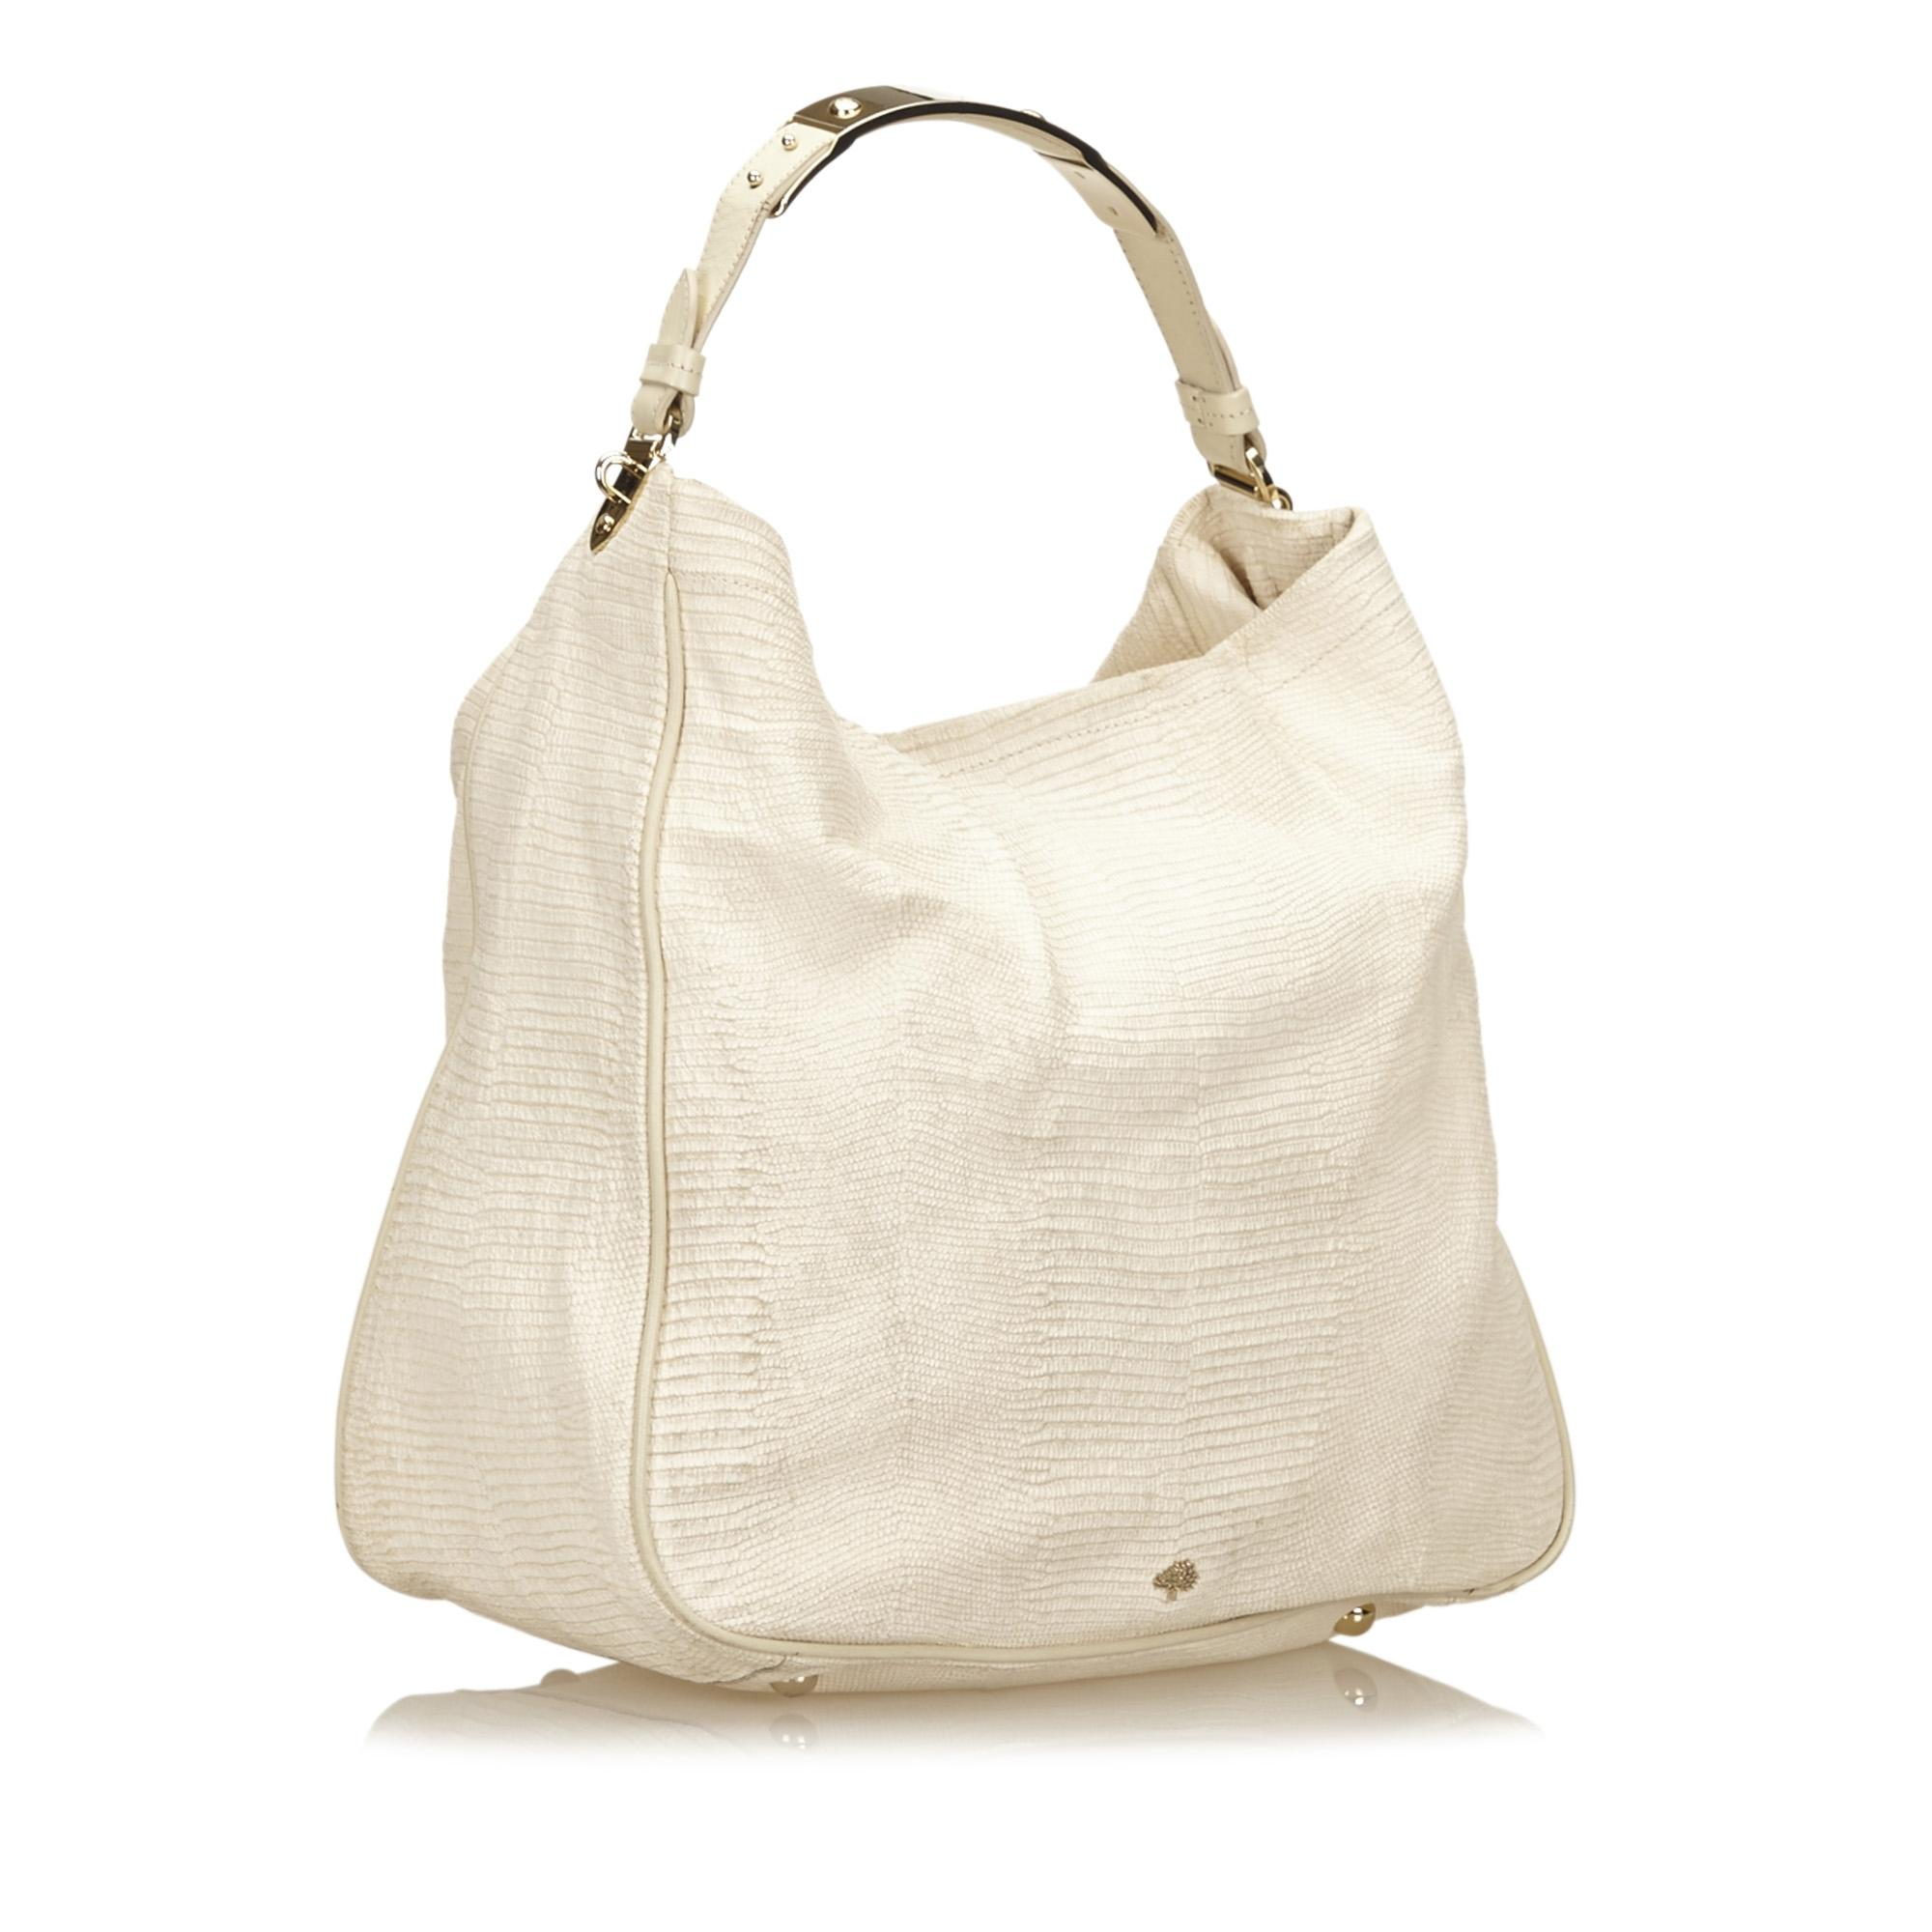 23e6ef2f94 ... australia mulberry evelina white leather hobo bag tradesy 88a43 5f4e2